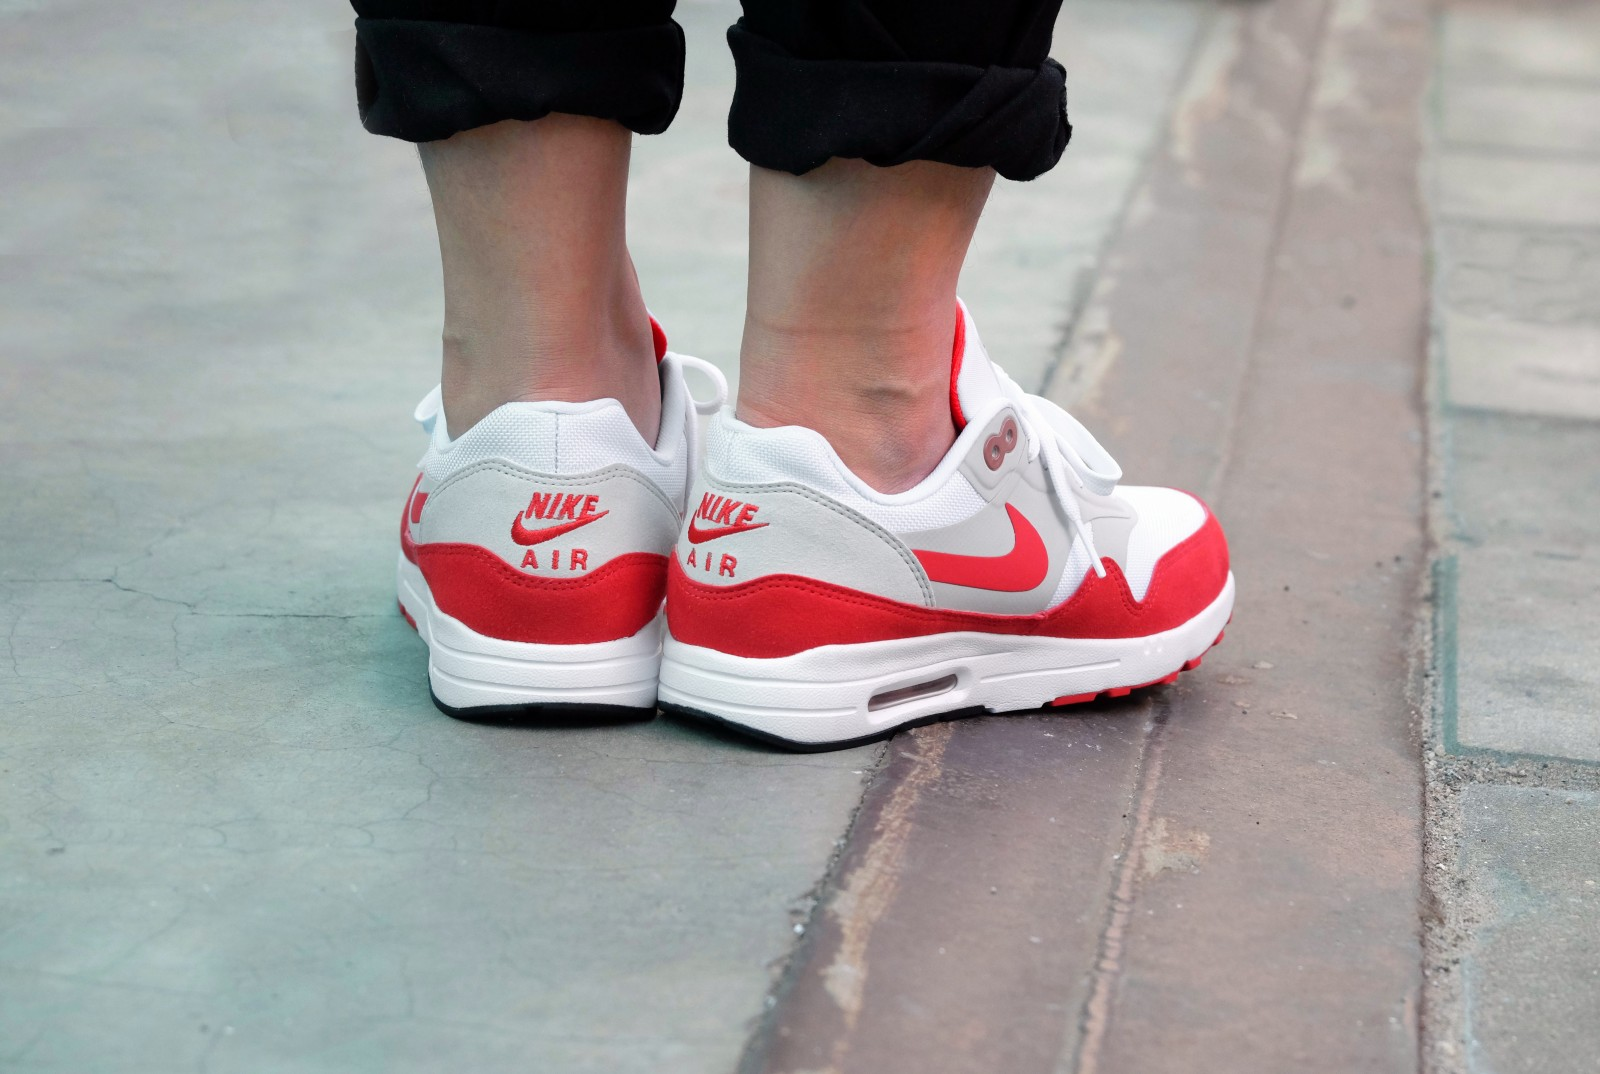 Chaussure Nike Wmns Air Max 1 Ultra 2.0 Le OG Red 3.26 Air Max Day femme (3)